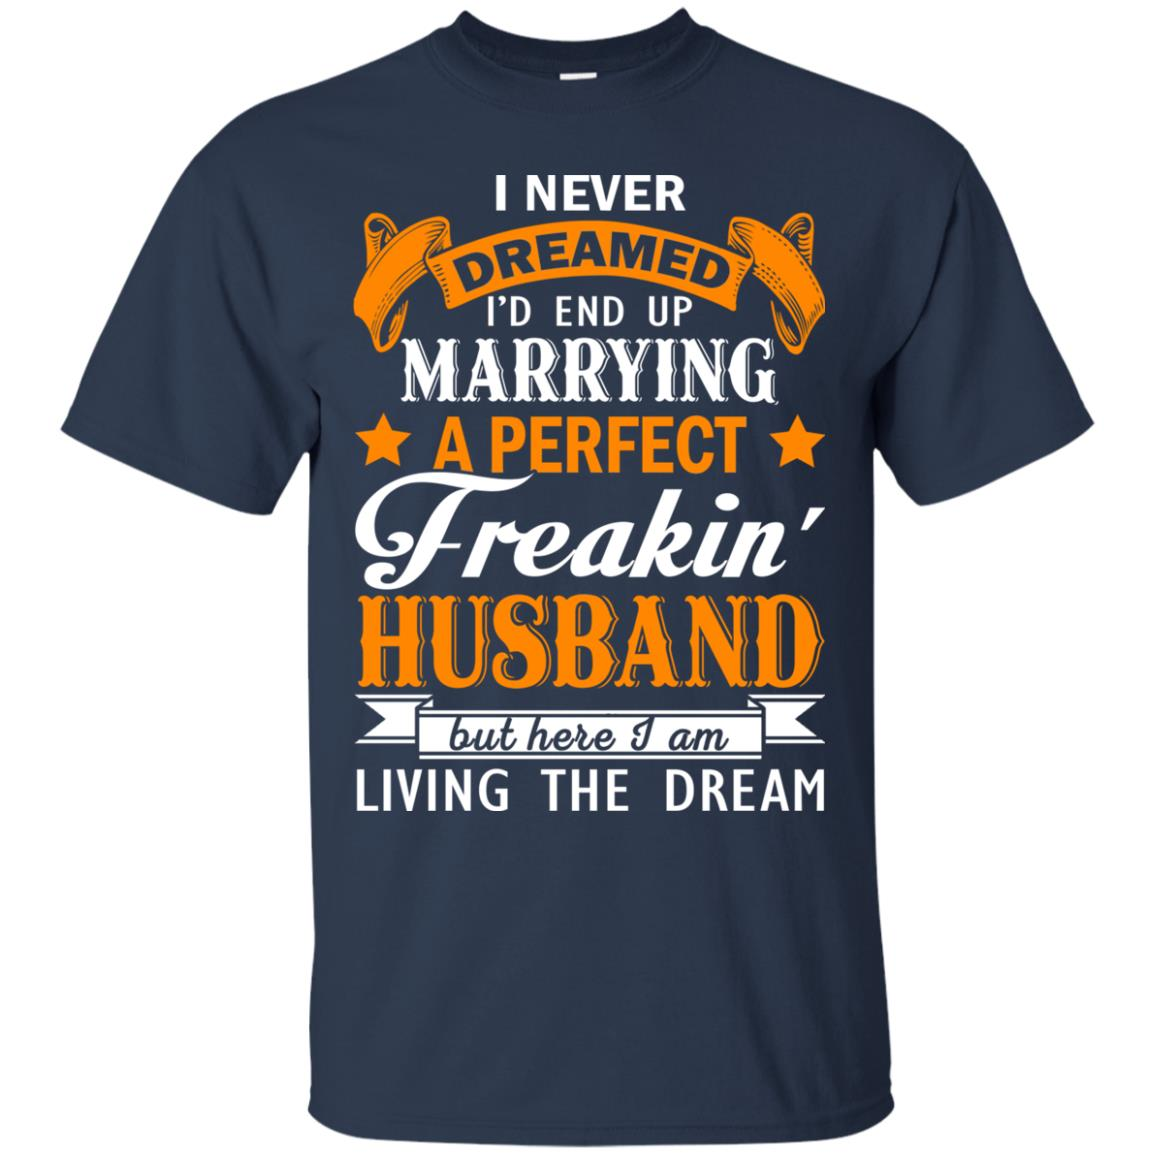 image 1839px I never dreamed I'd end up marrying a perfect freaking husband t shirts, hoodies, tank